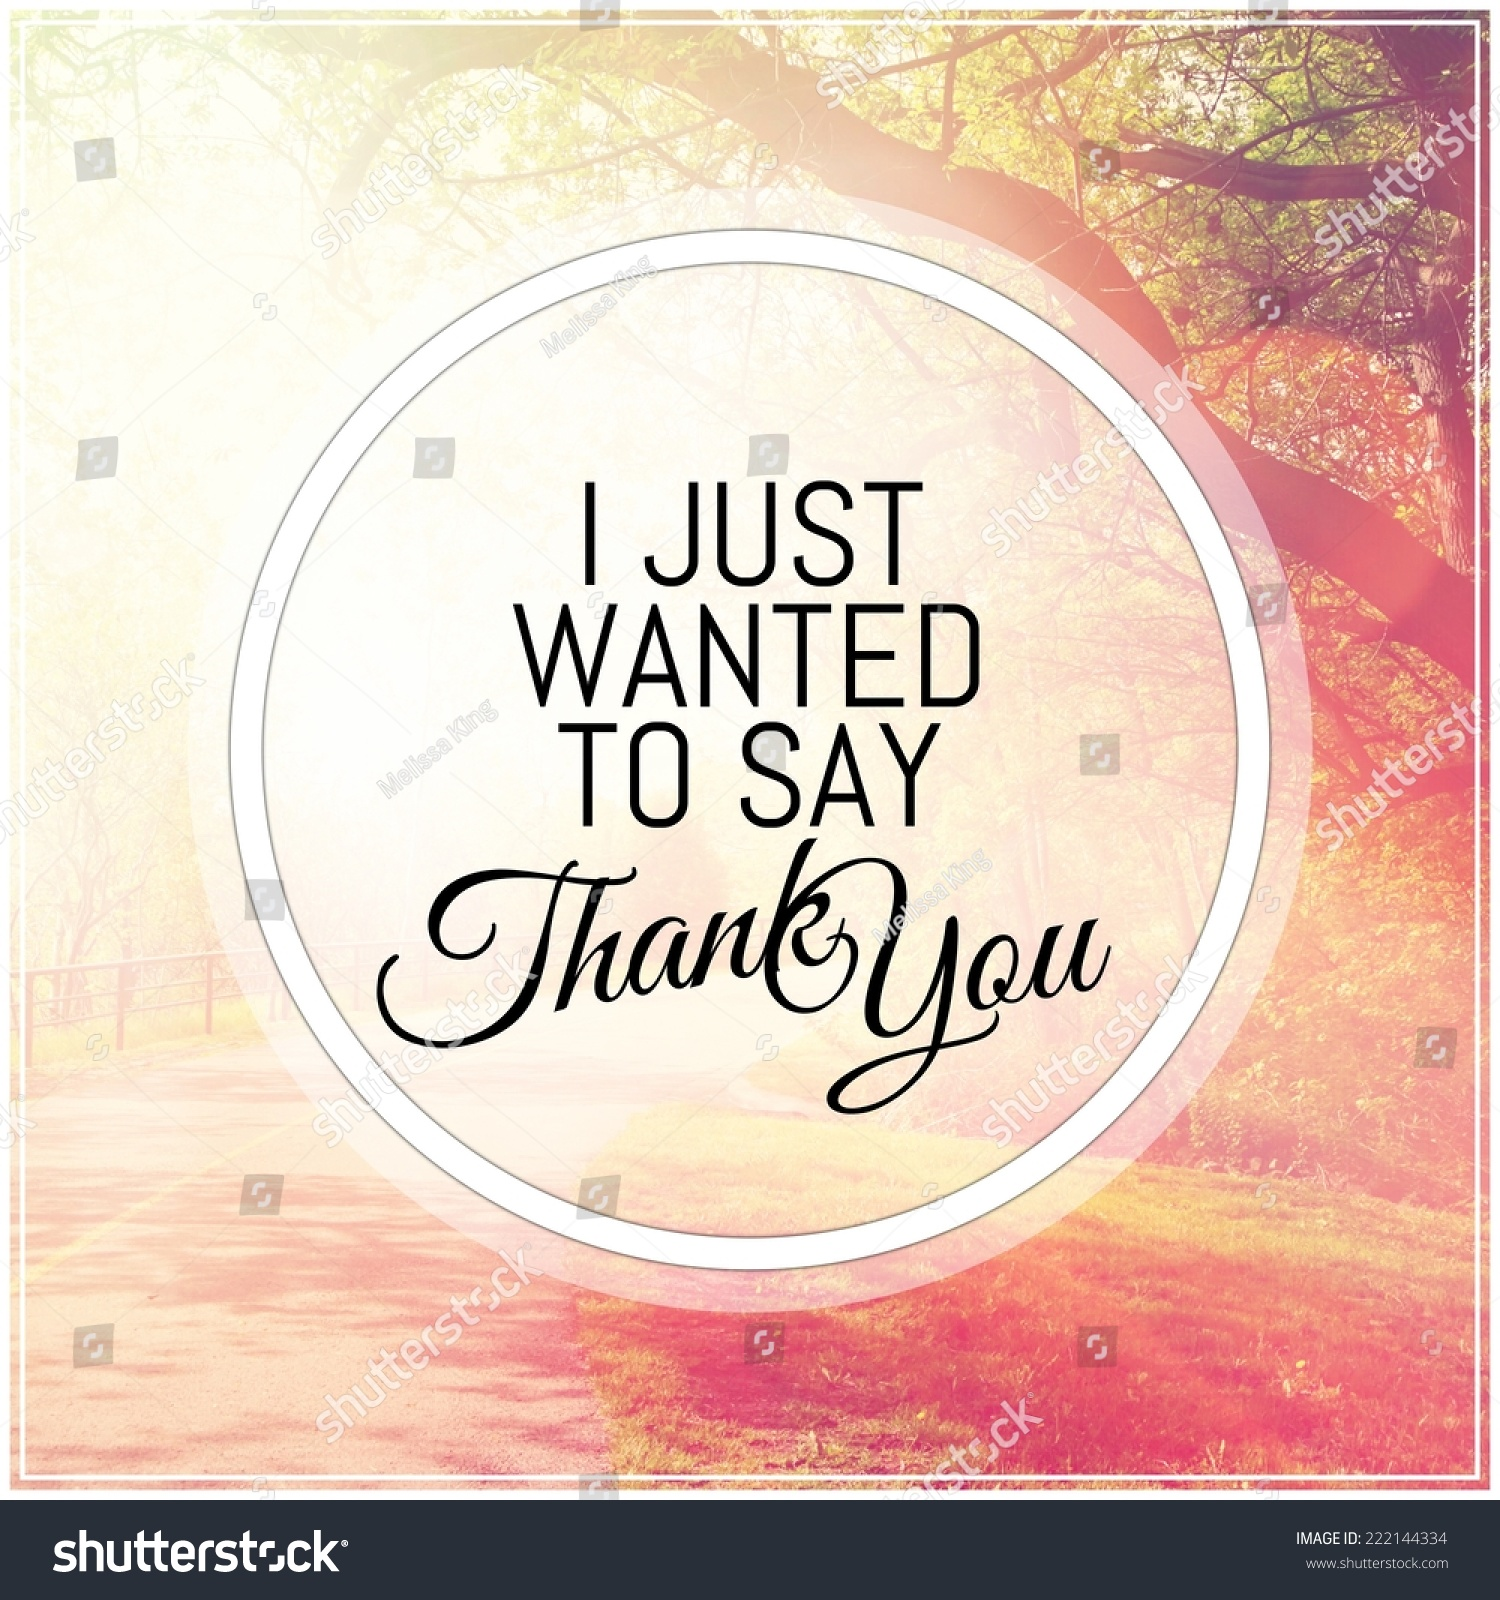 Quotes To Say Thanks: Inspirational Typographic Quote Just Wanted Say Stock